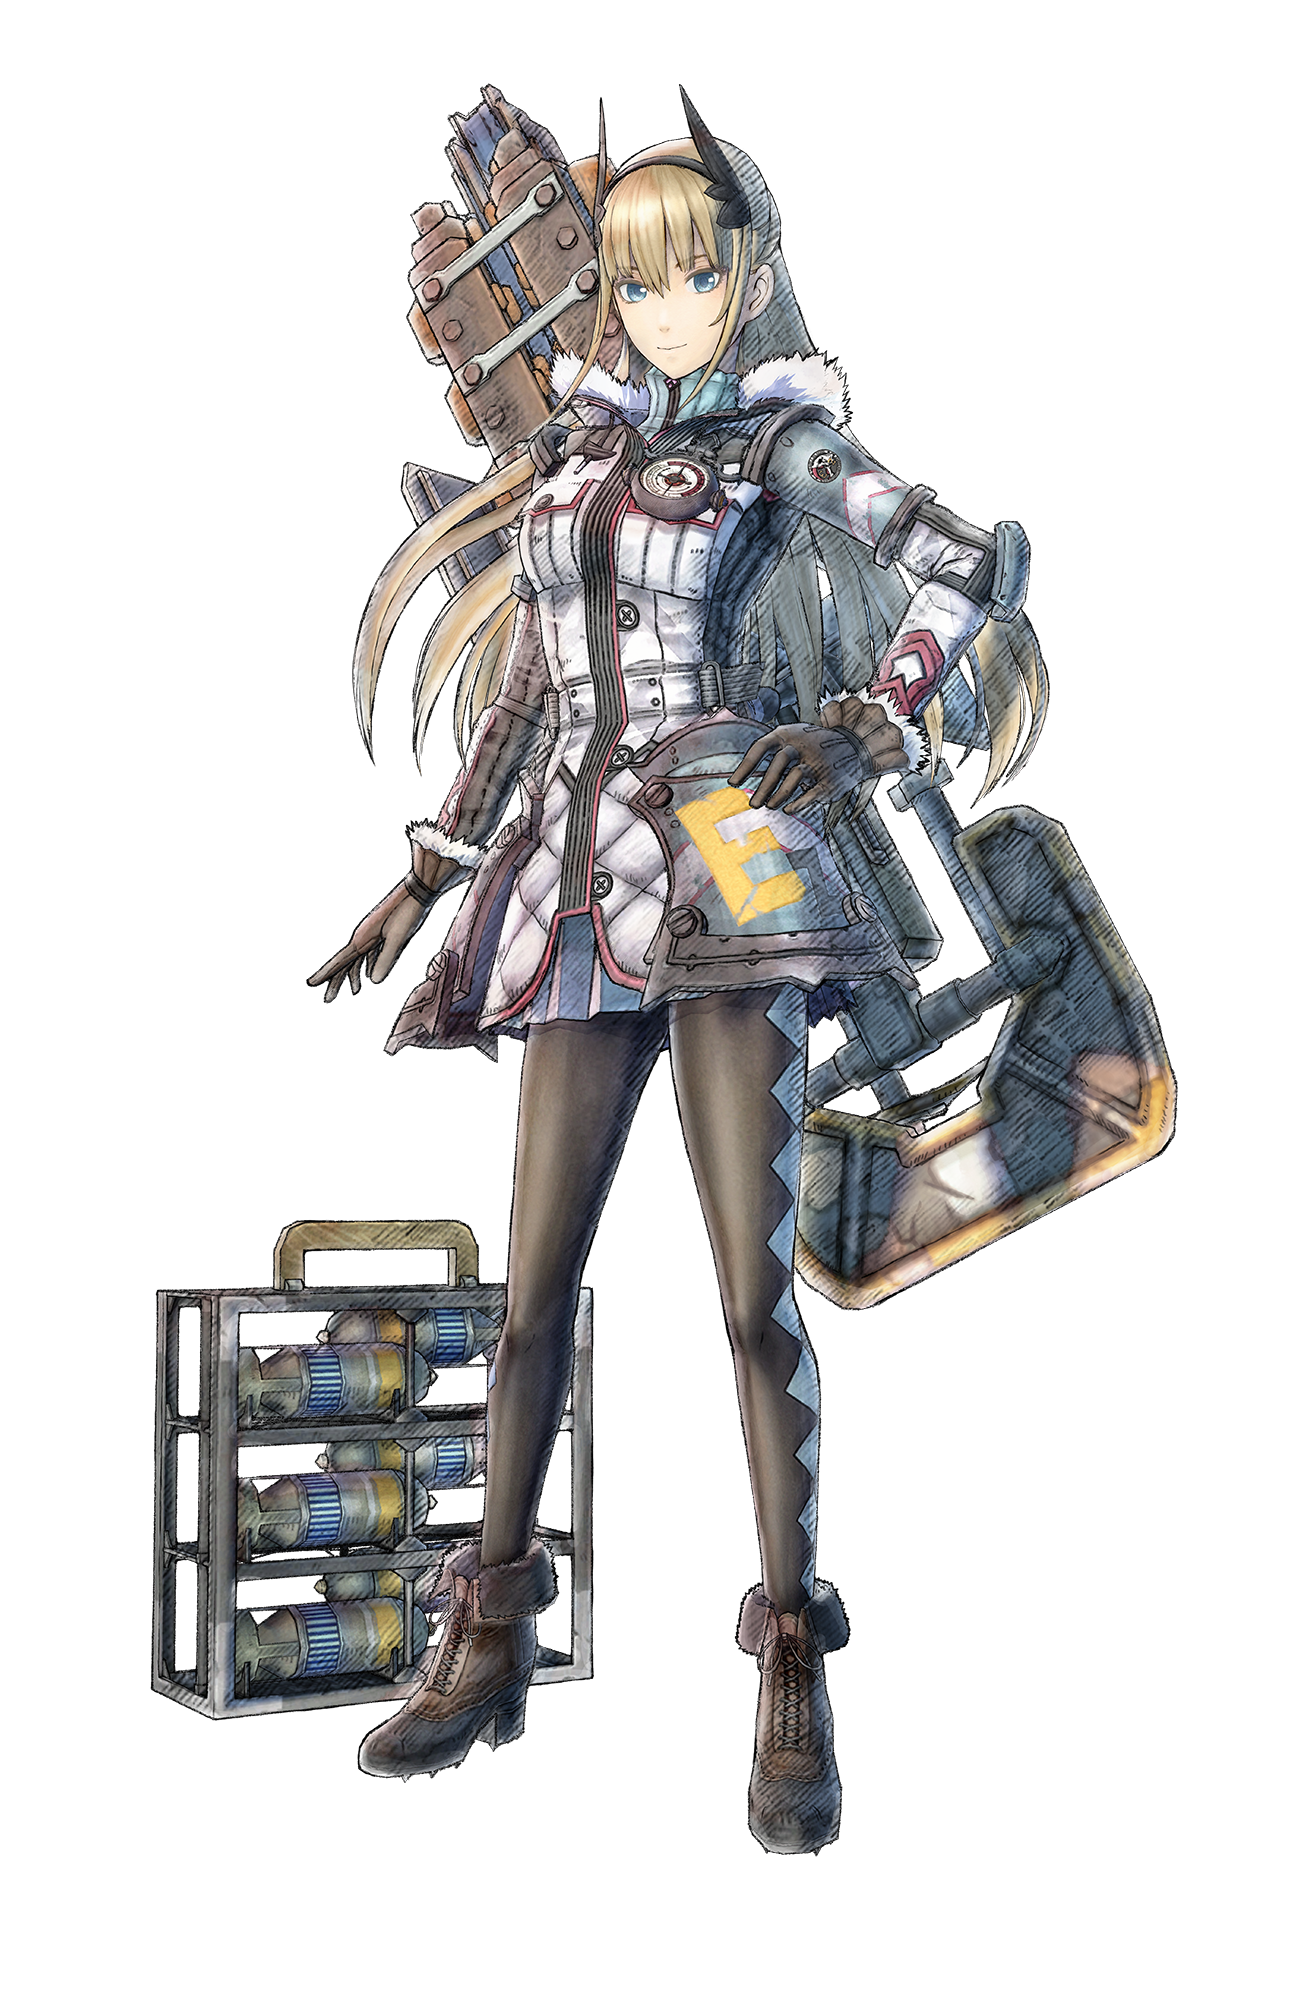 Valkyria-Chronicles-4_2017_11-19-17_006.png